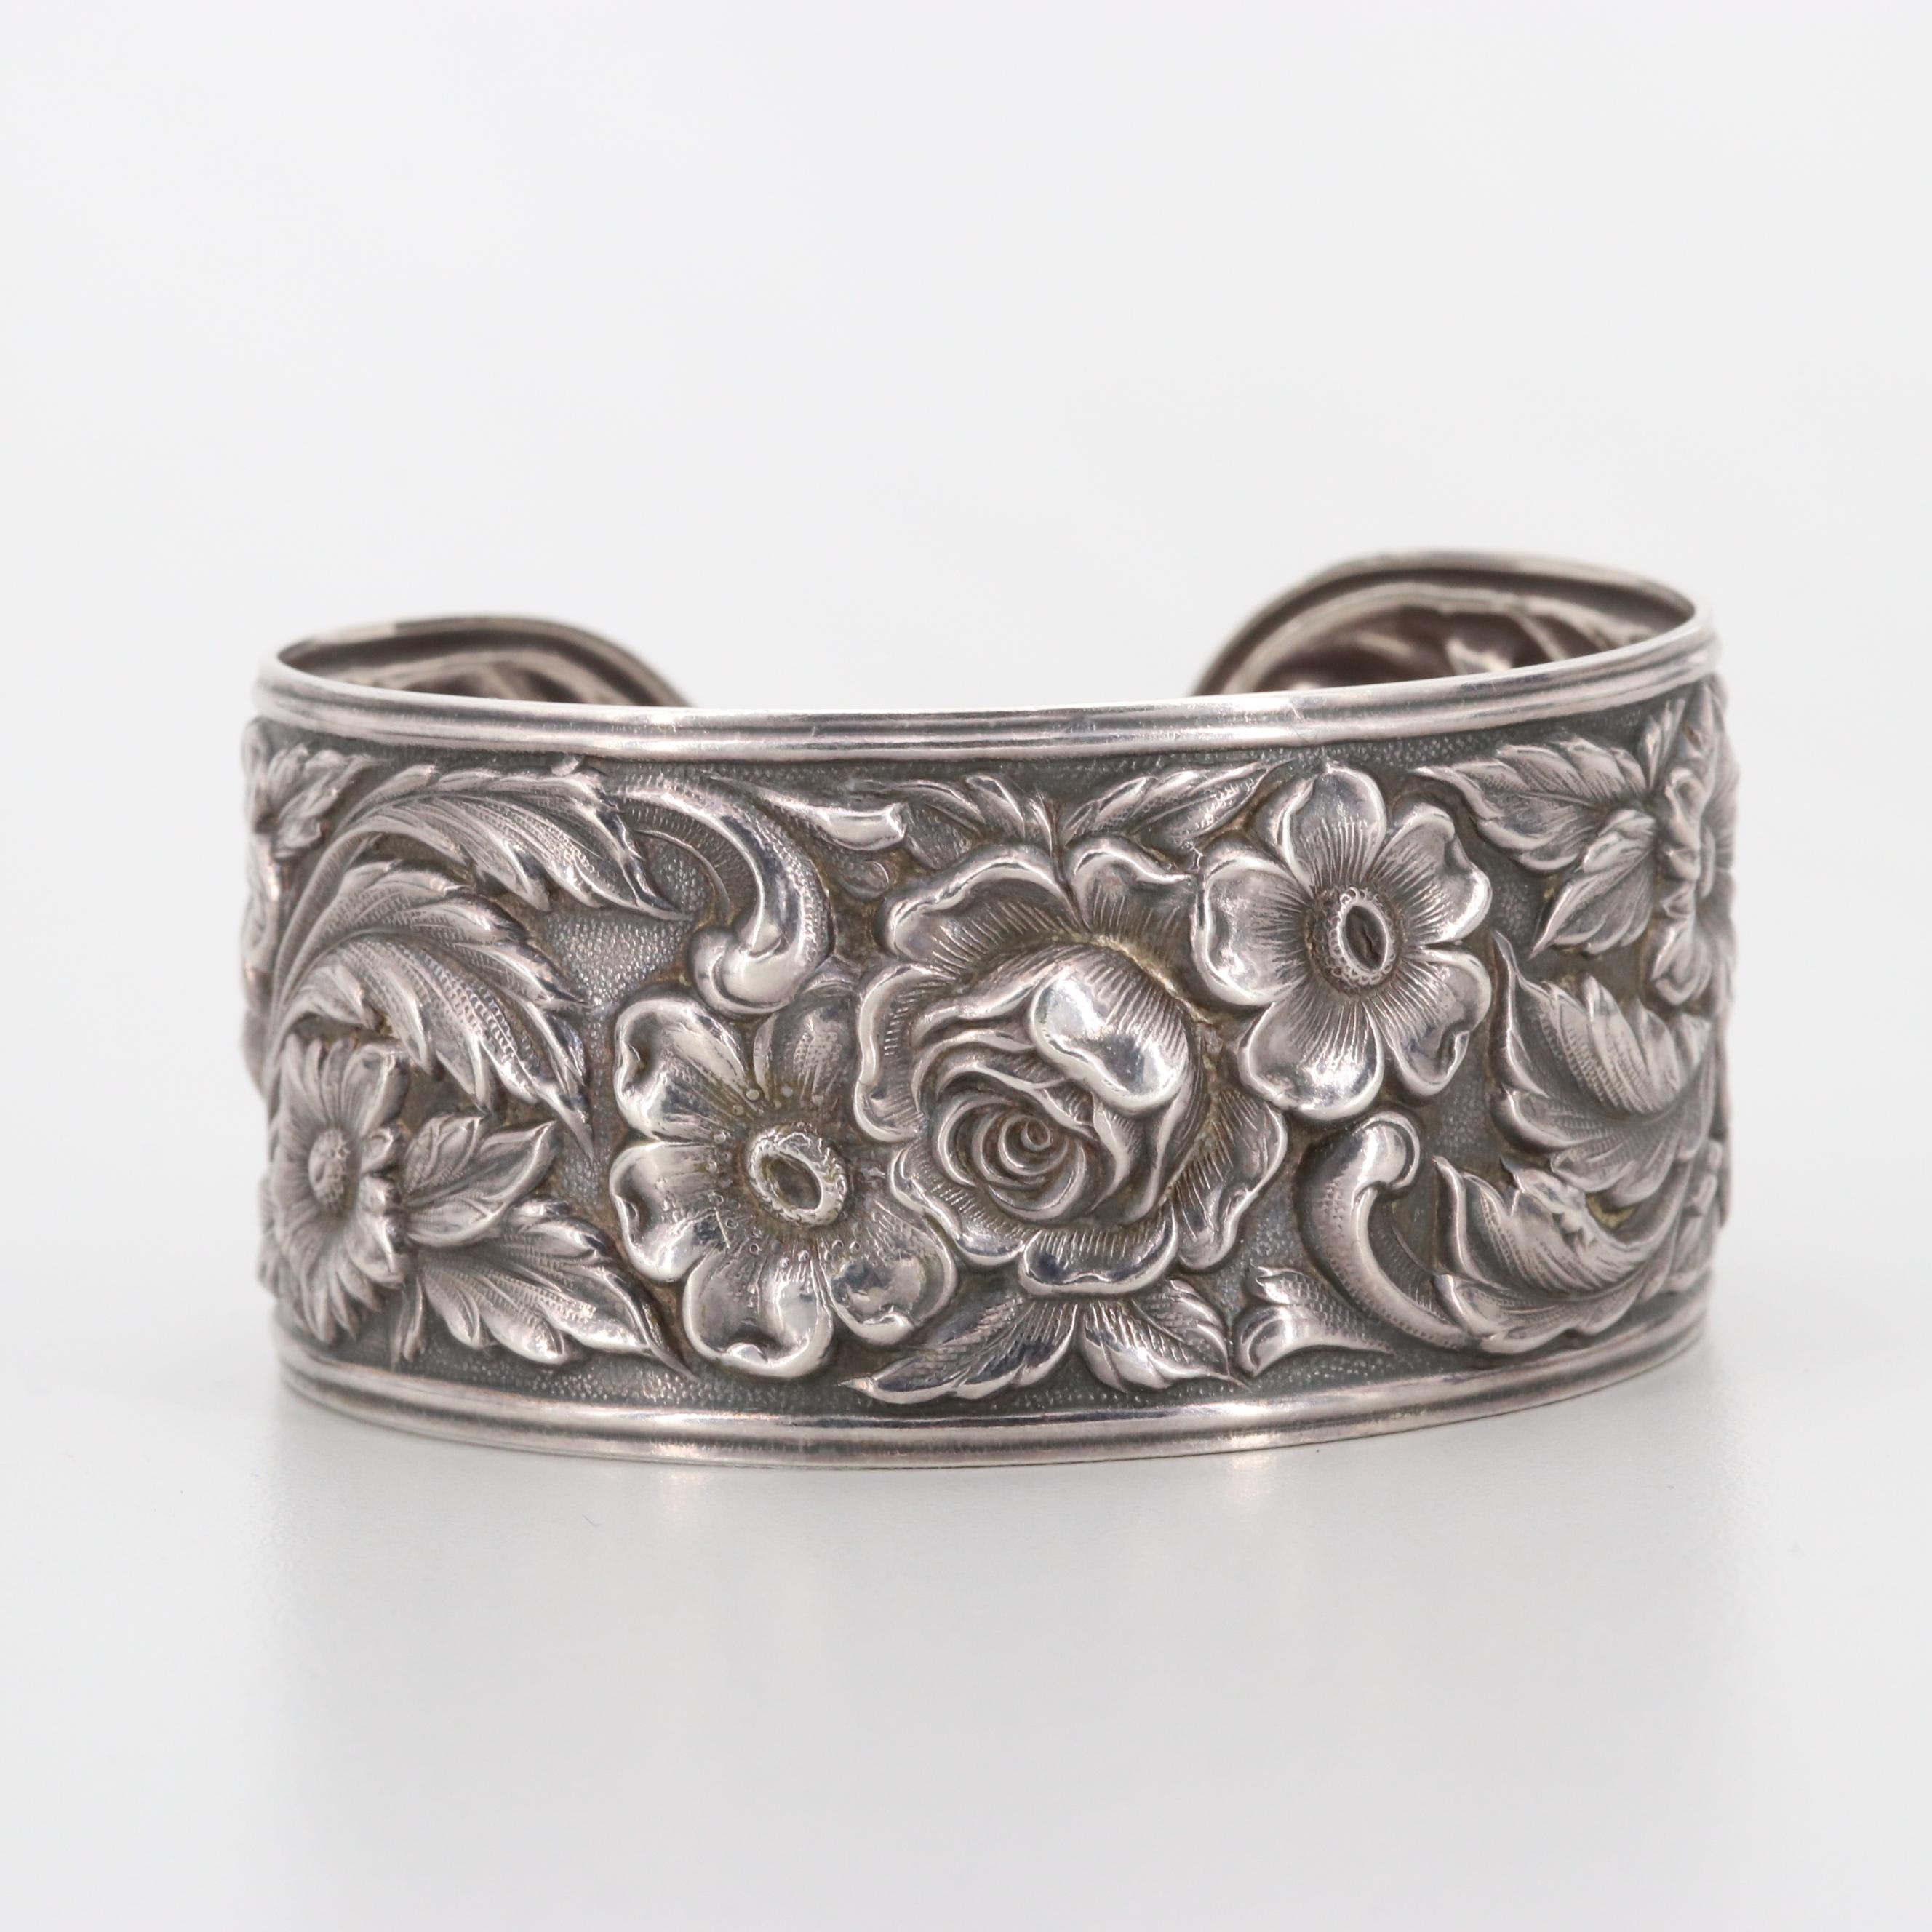 Vintage, Fine and Fashion Jewelry